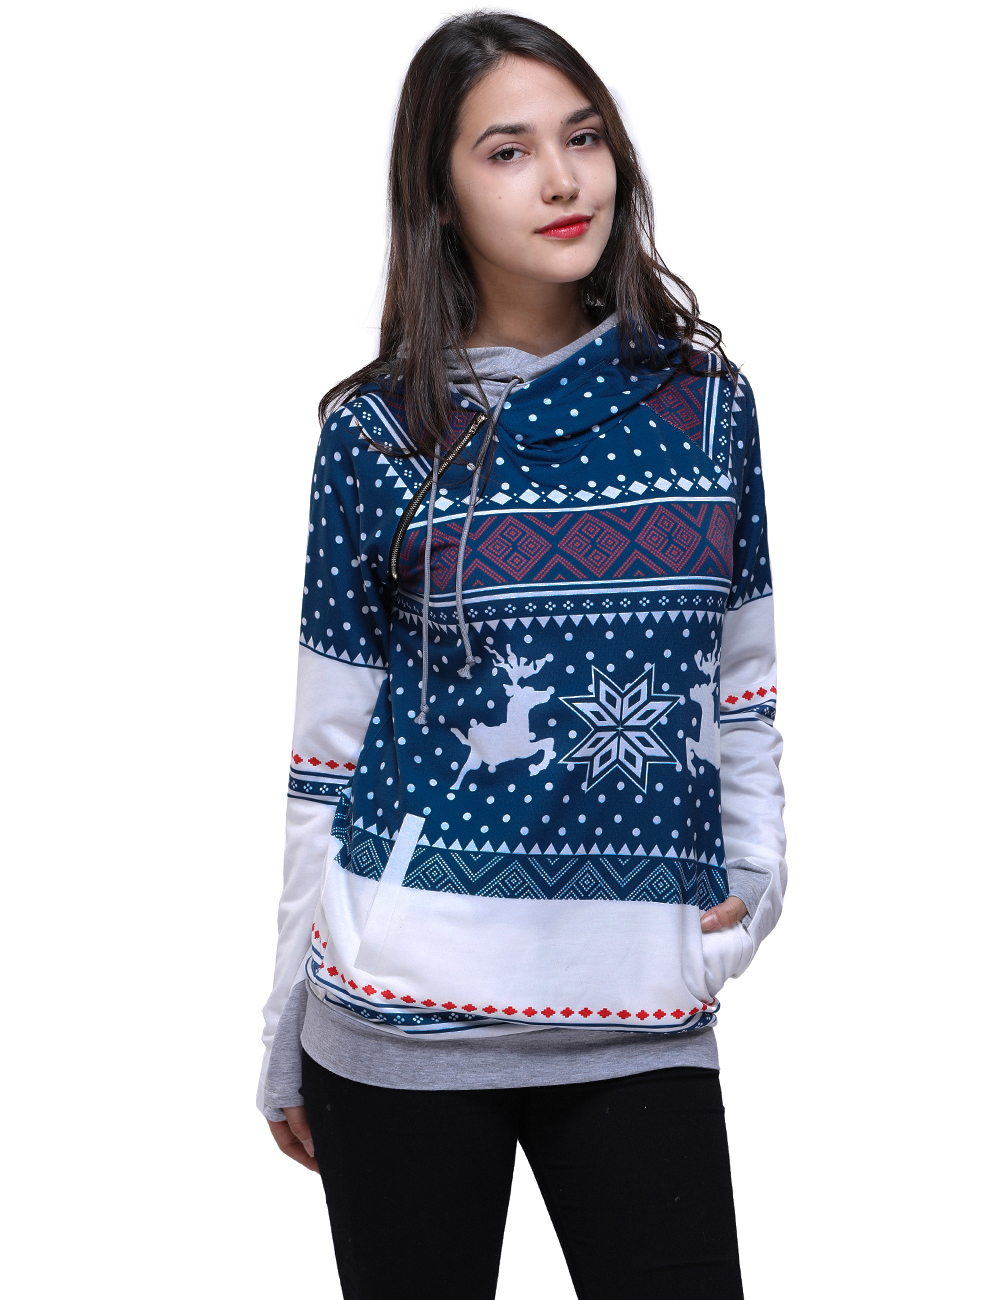 New 2018 Autumn Winter Christmas Printed Women Hooded Sweater Fawn & Snowflake Knitted Christmas Sweaters